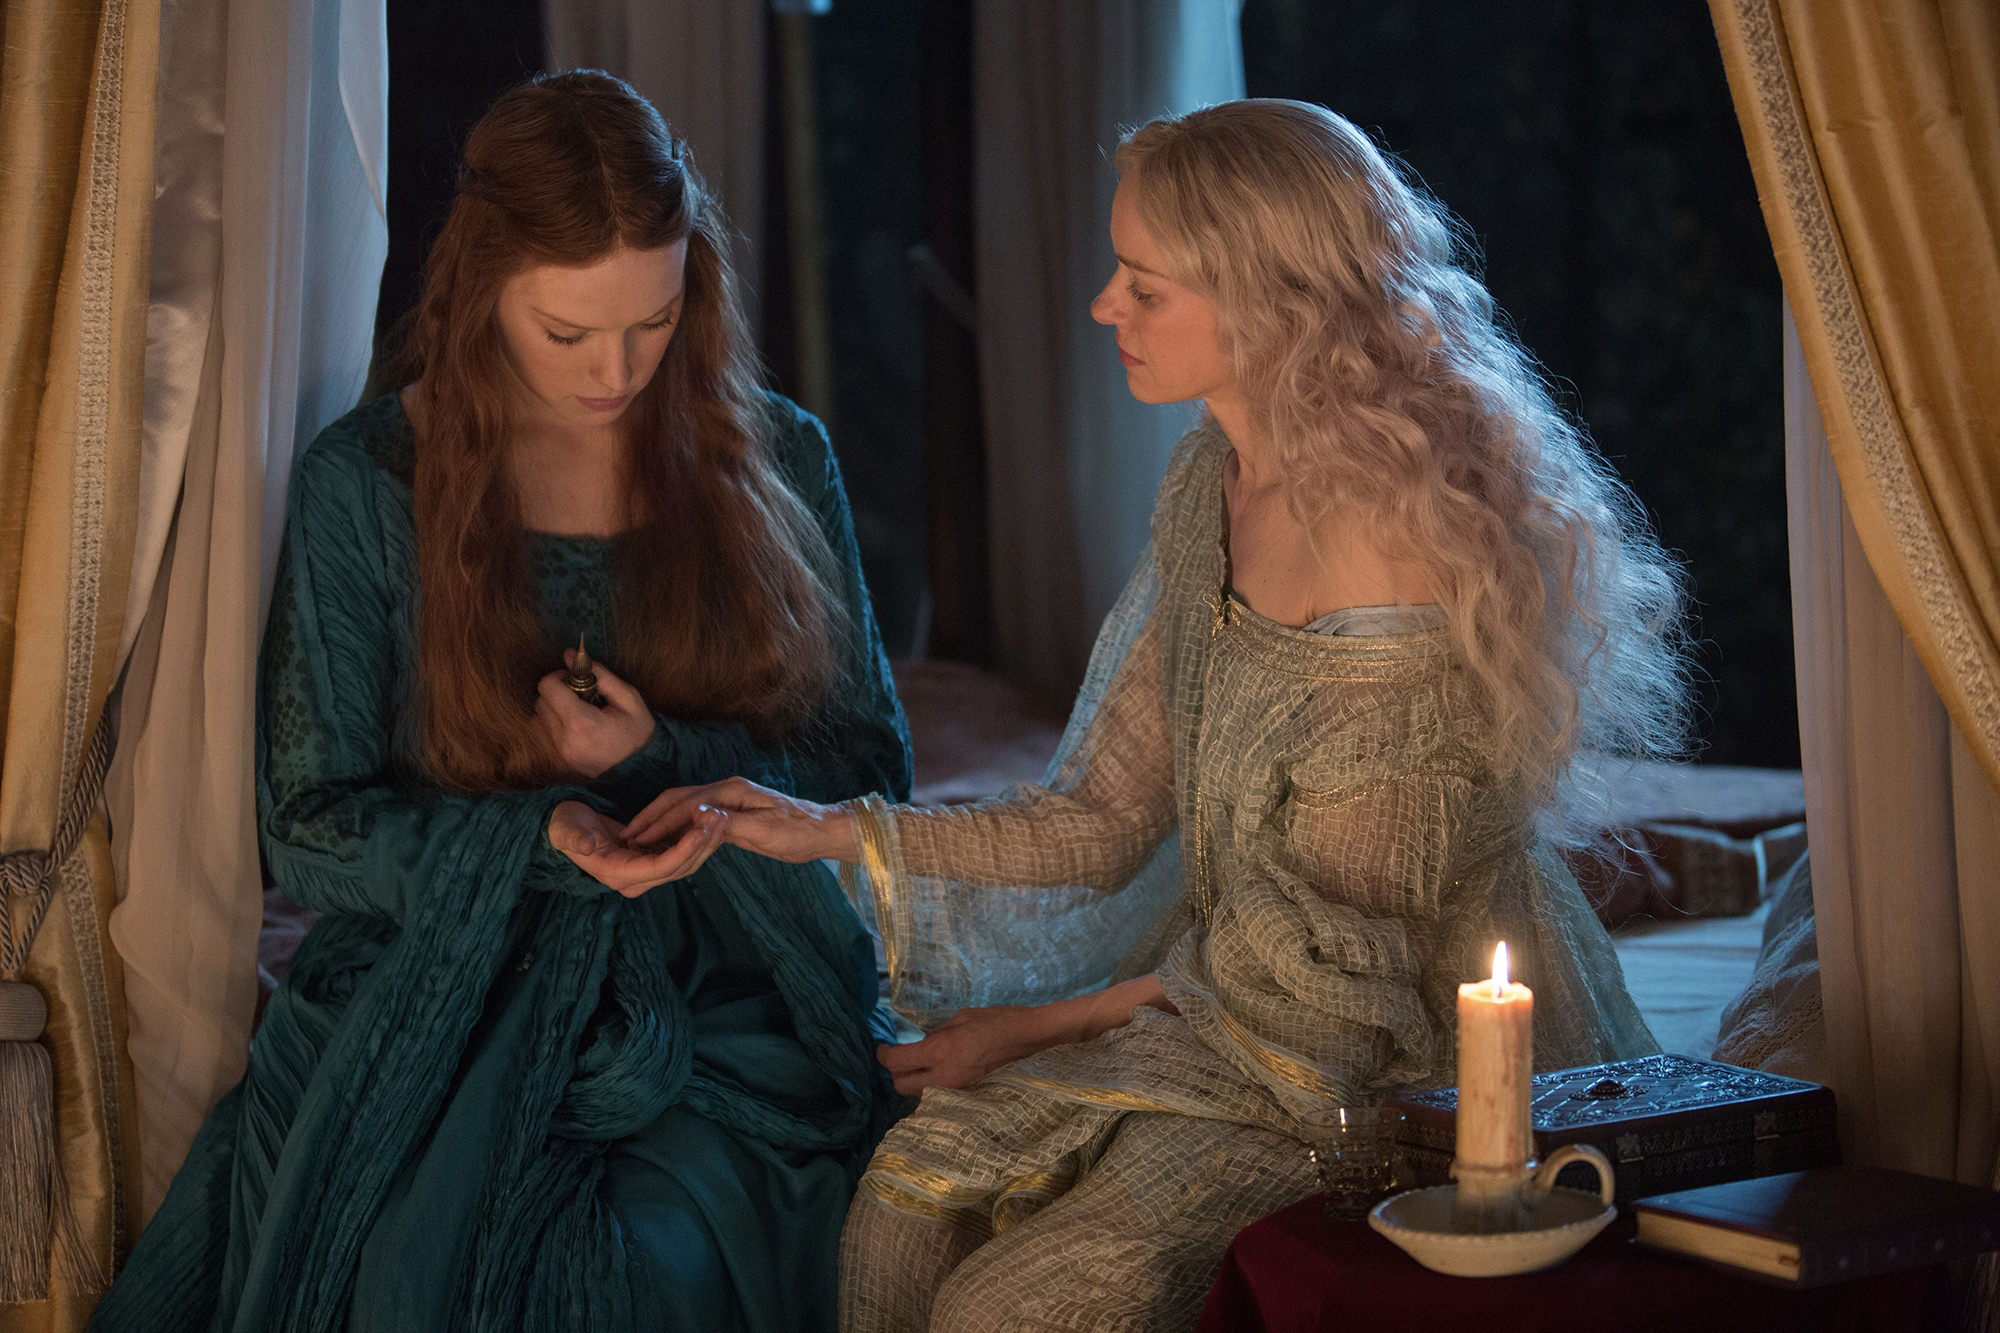 Daisy Ridley and Naomi Watts in Ophelia